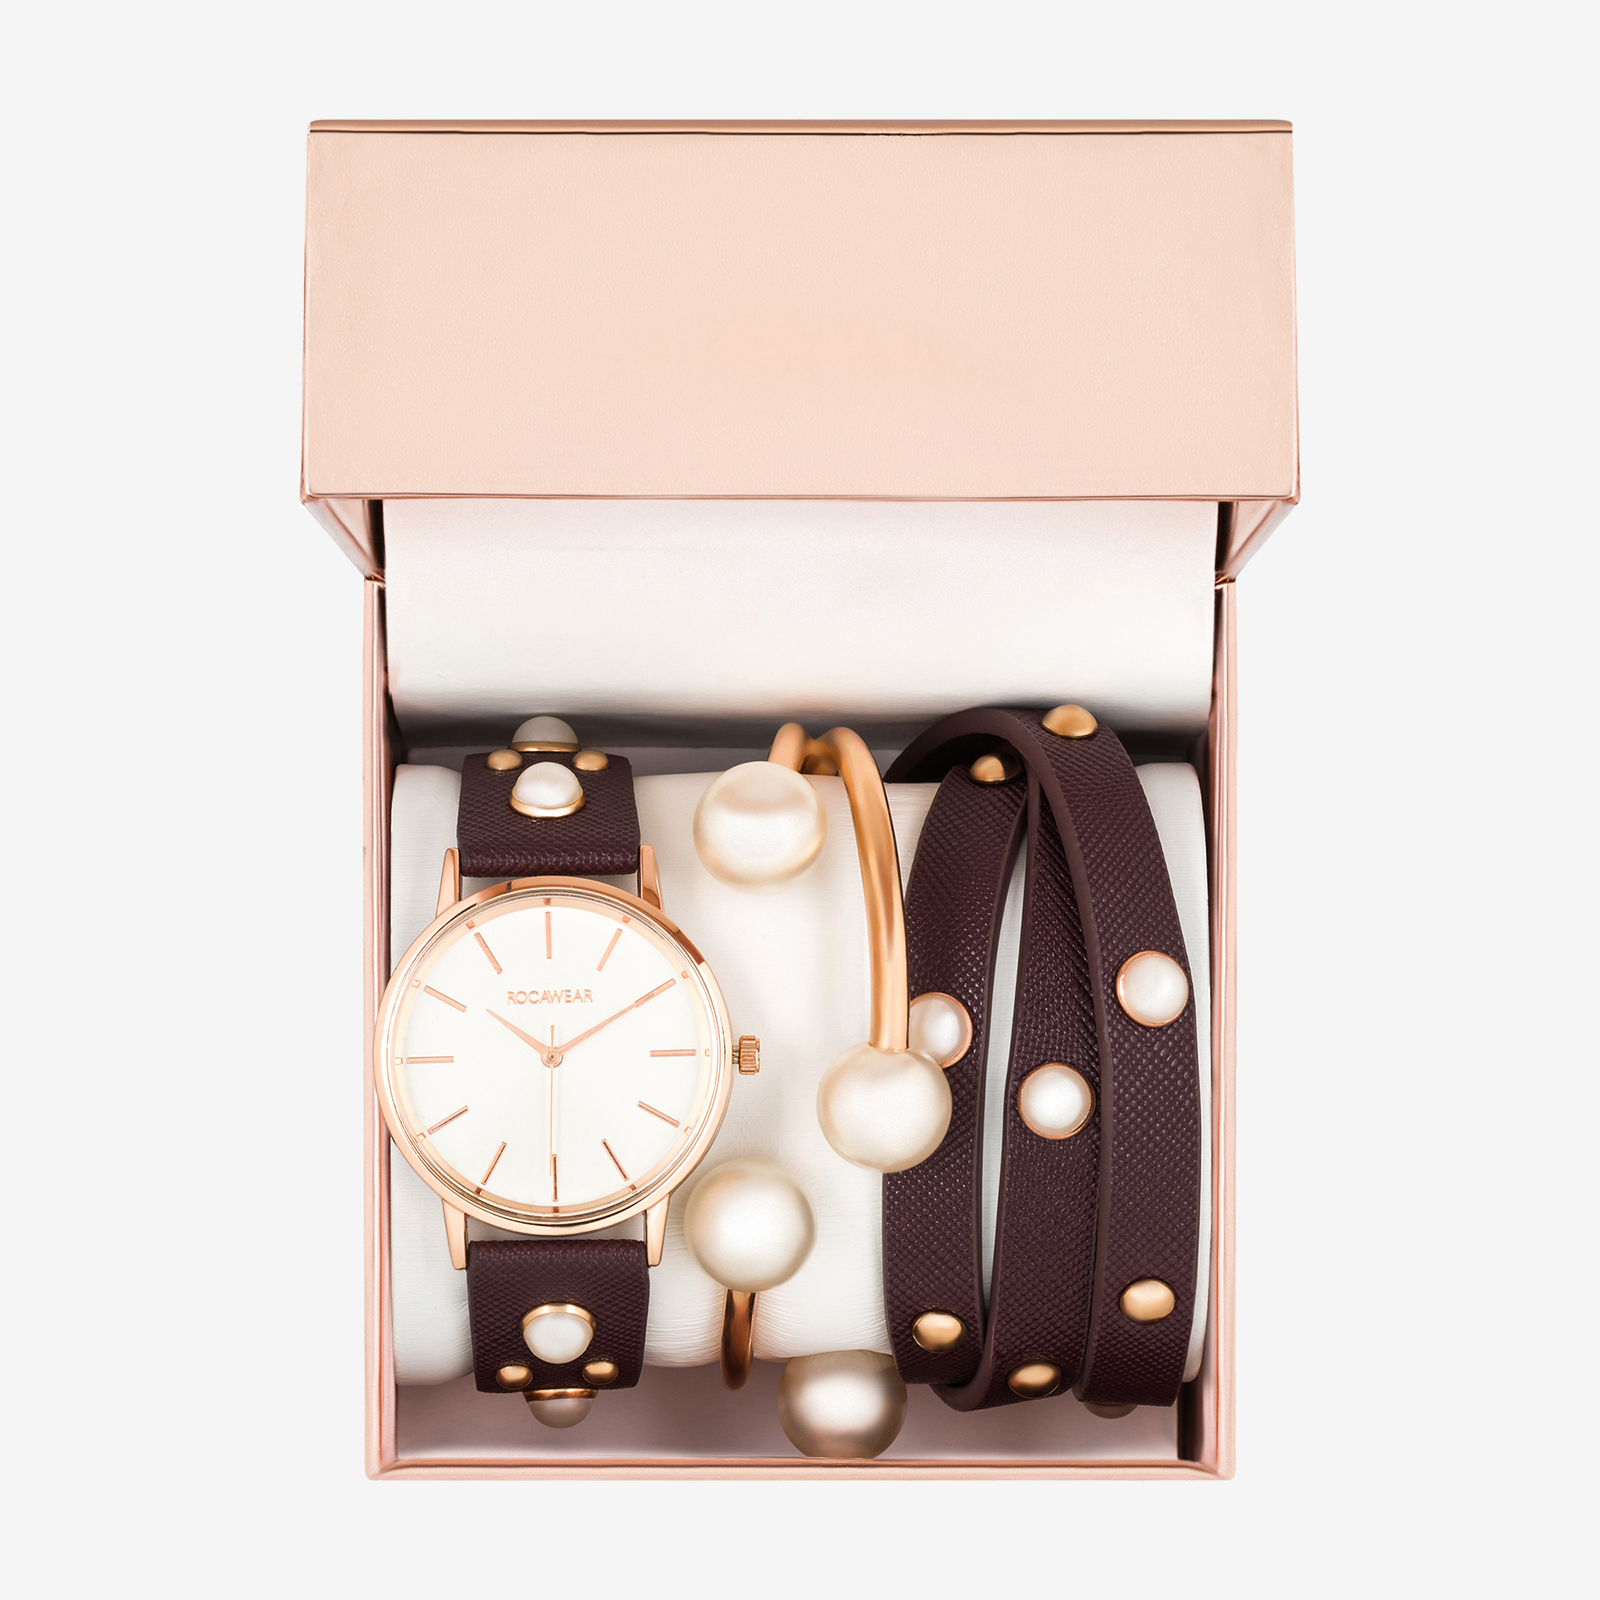 Watch product image